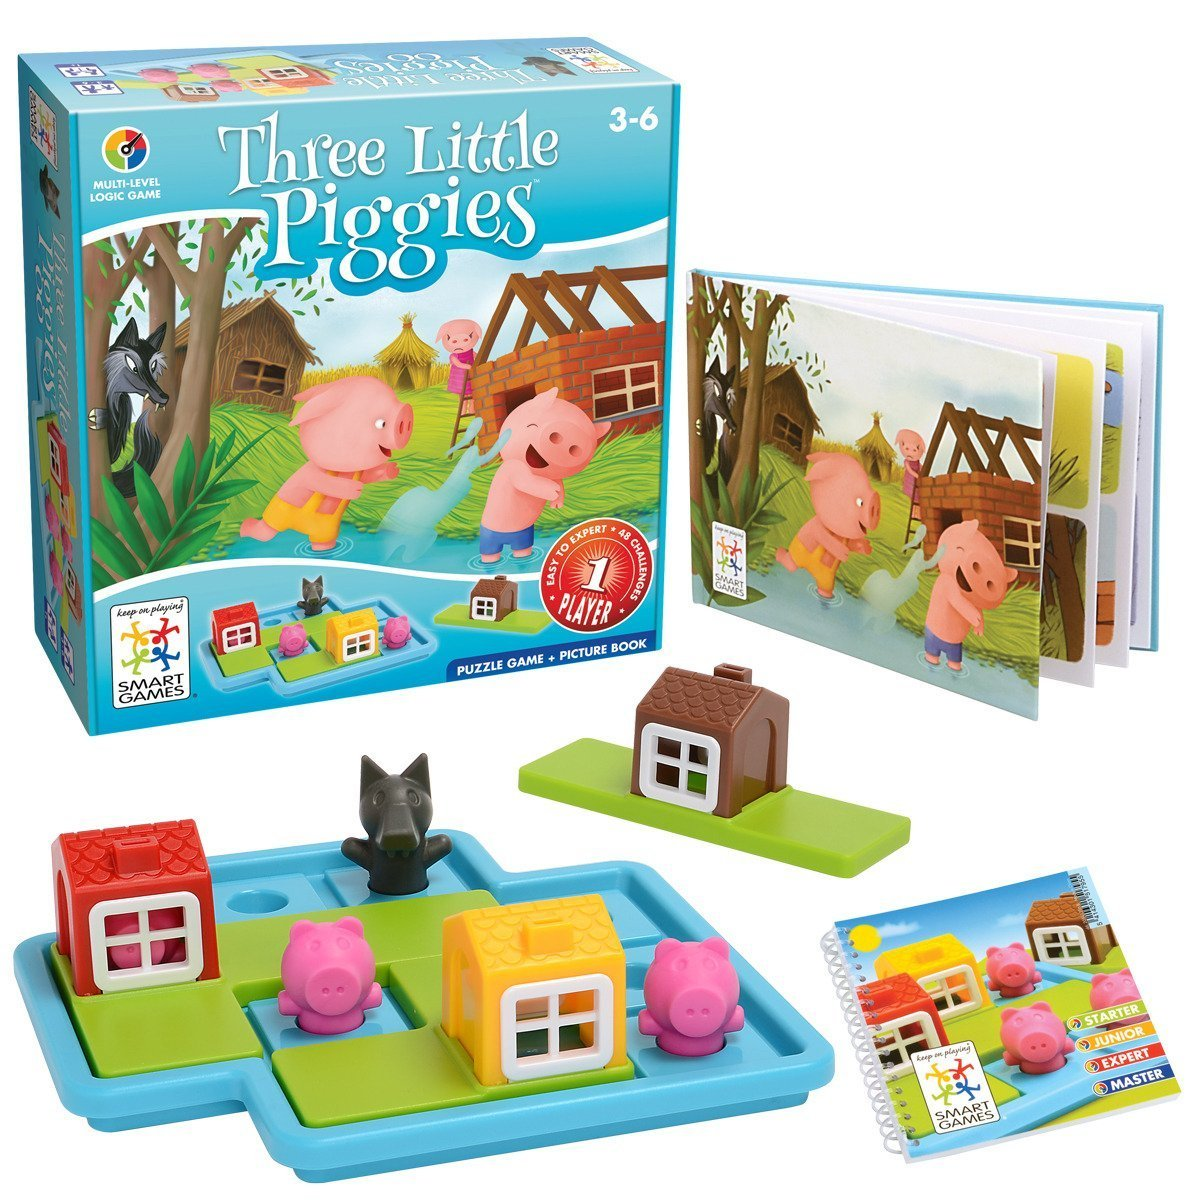 Three Little Piggies, Multi-Level Logic Game Made by Smart Games three-little-piggies